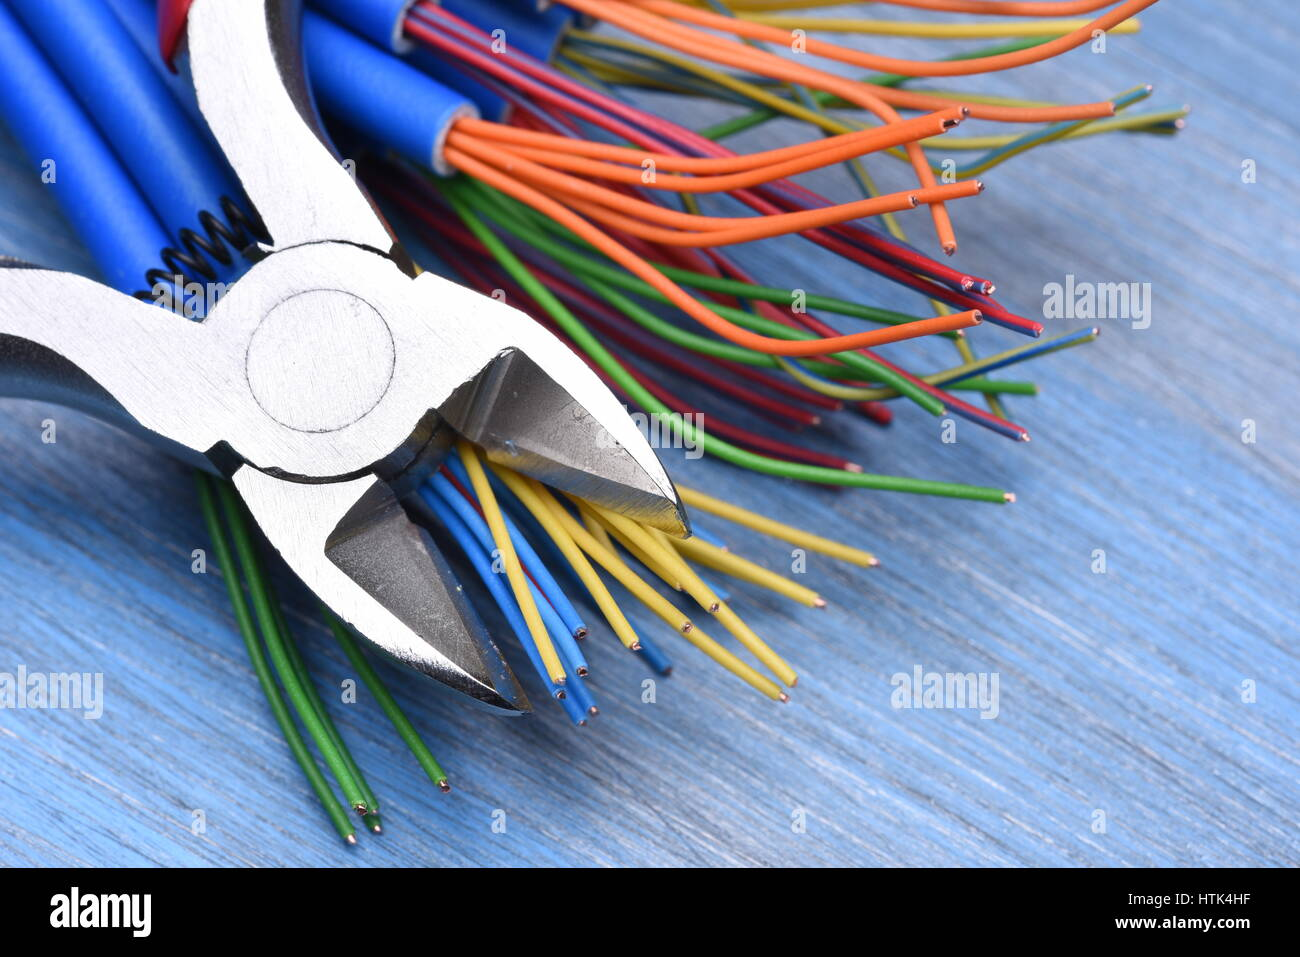 Electrical Tools Cables On Metal Stock Photos Cable Wiring Tool And Wires Background Image